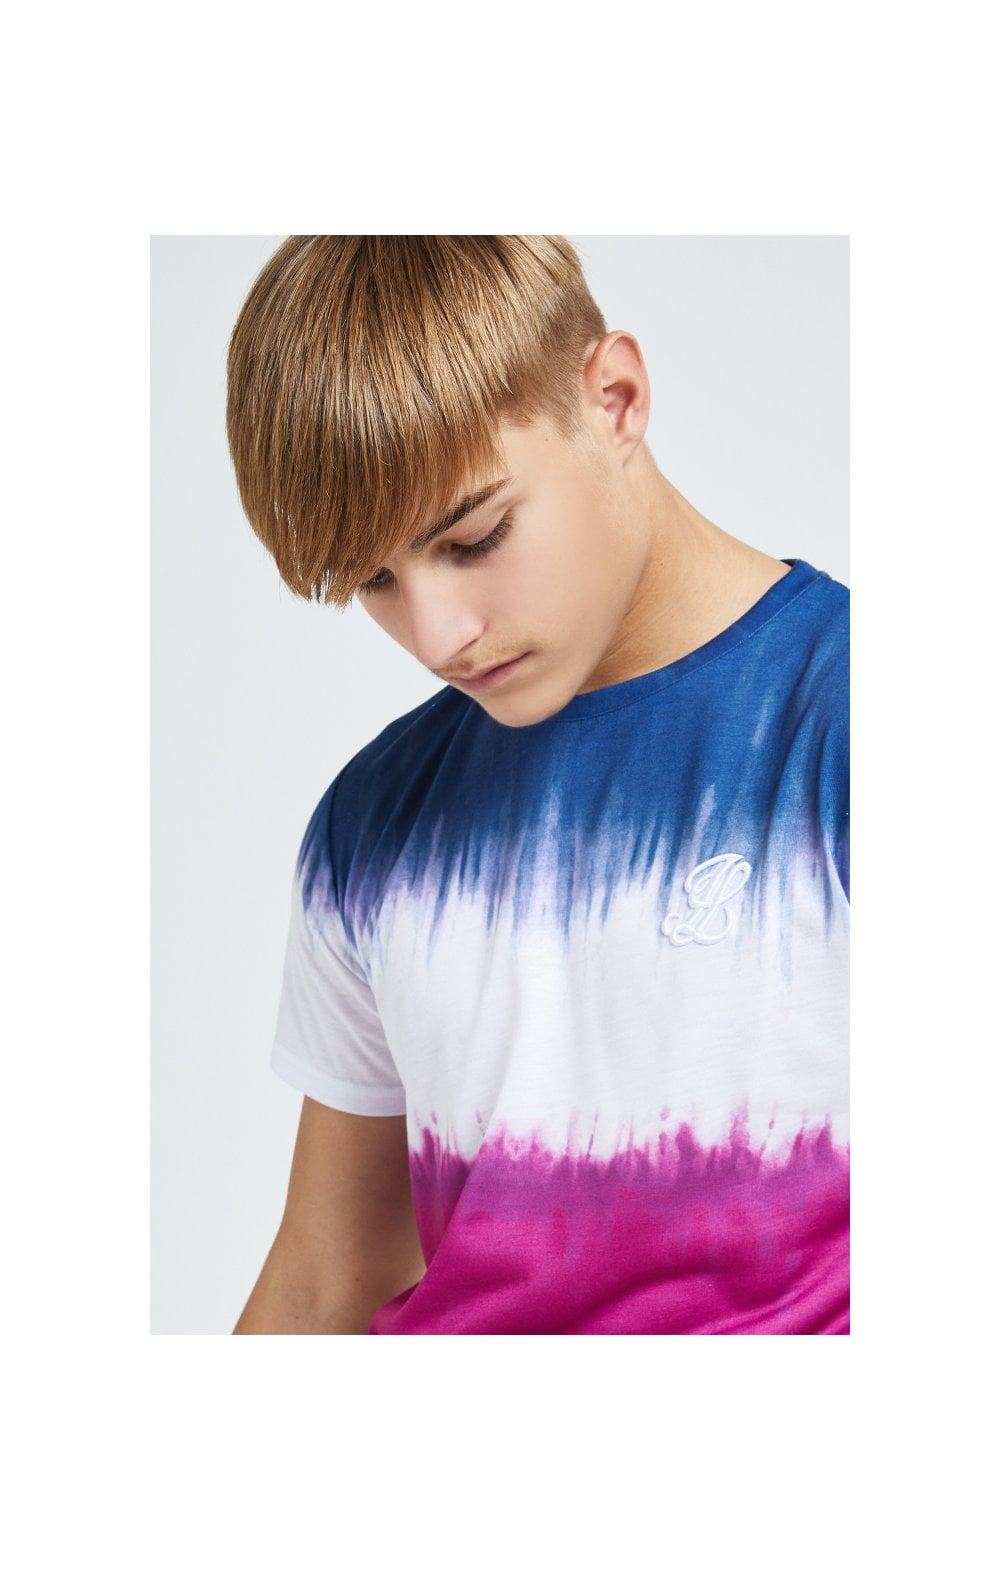 Illusive London Tie Fade Print Tee – Indigo, White & Pink (1)